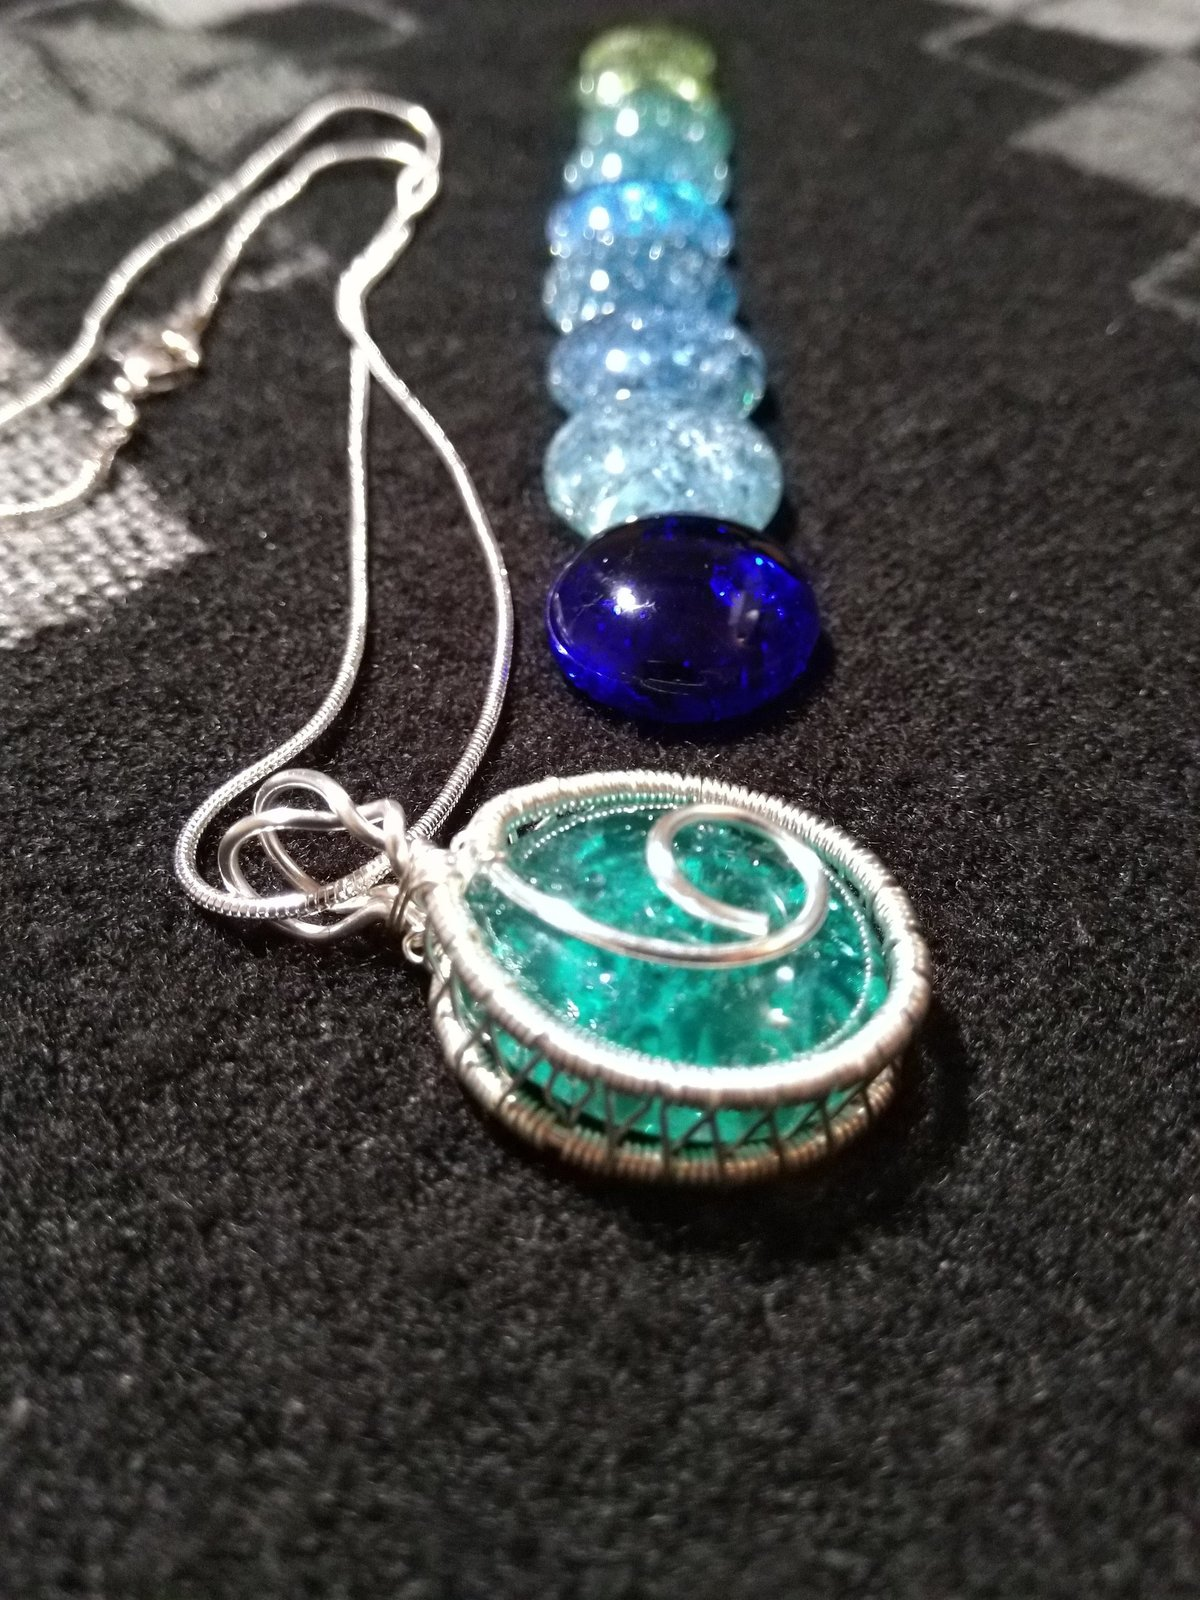 Blue and Green Shades Lollipop Swirl Cracked Glass Pendants, 9 Colors Available